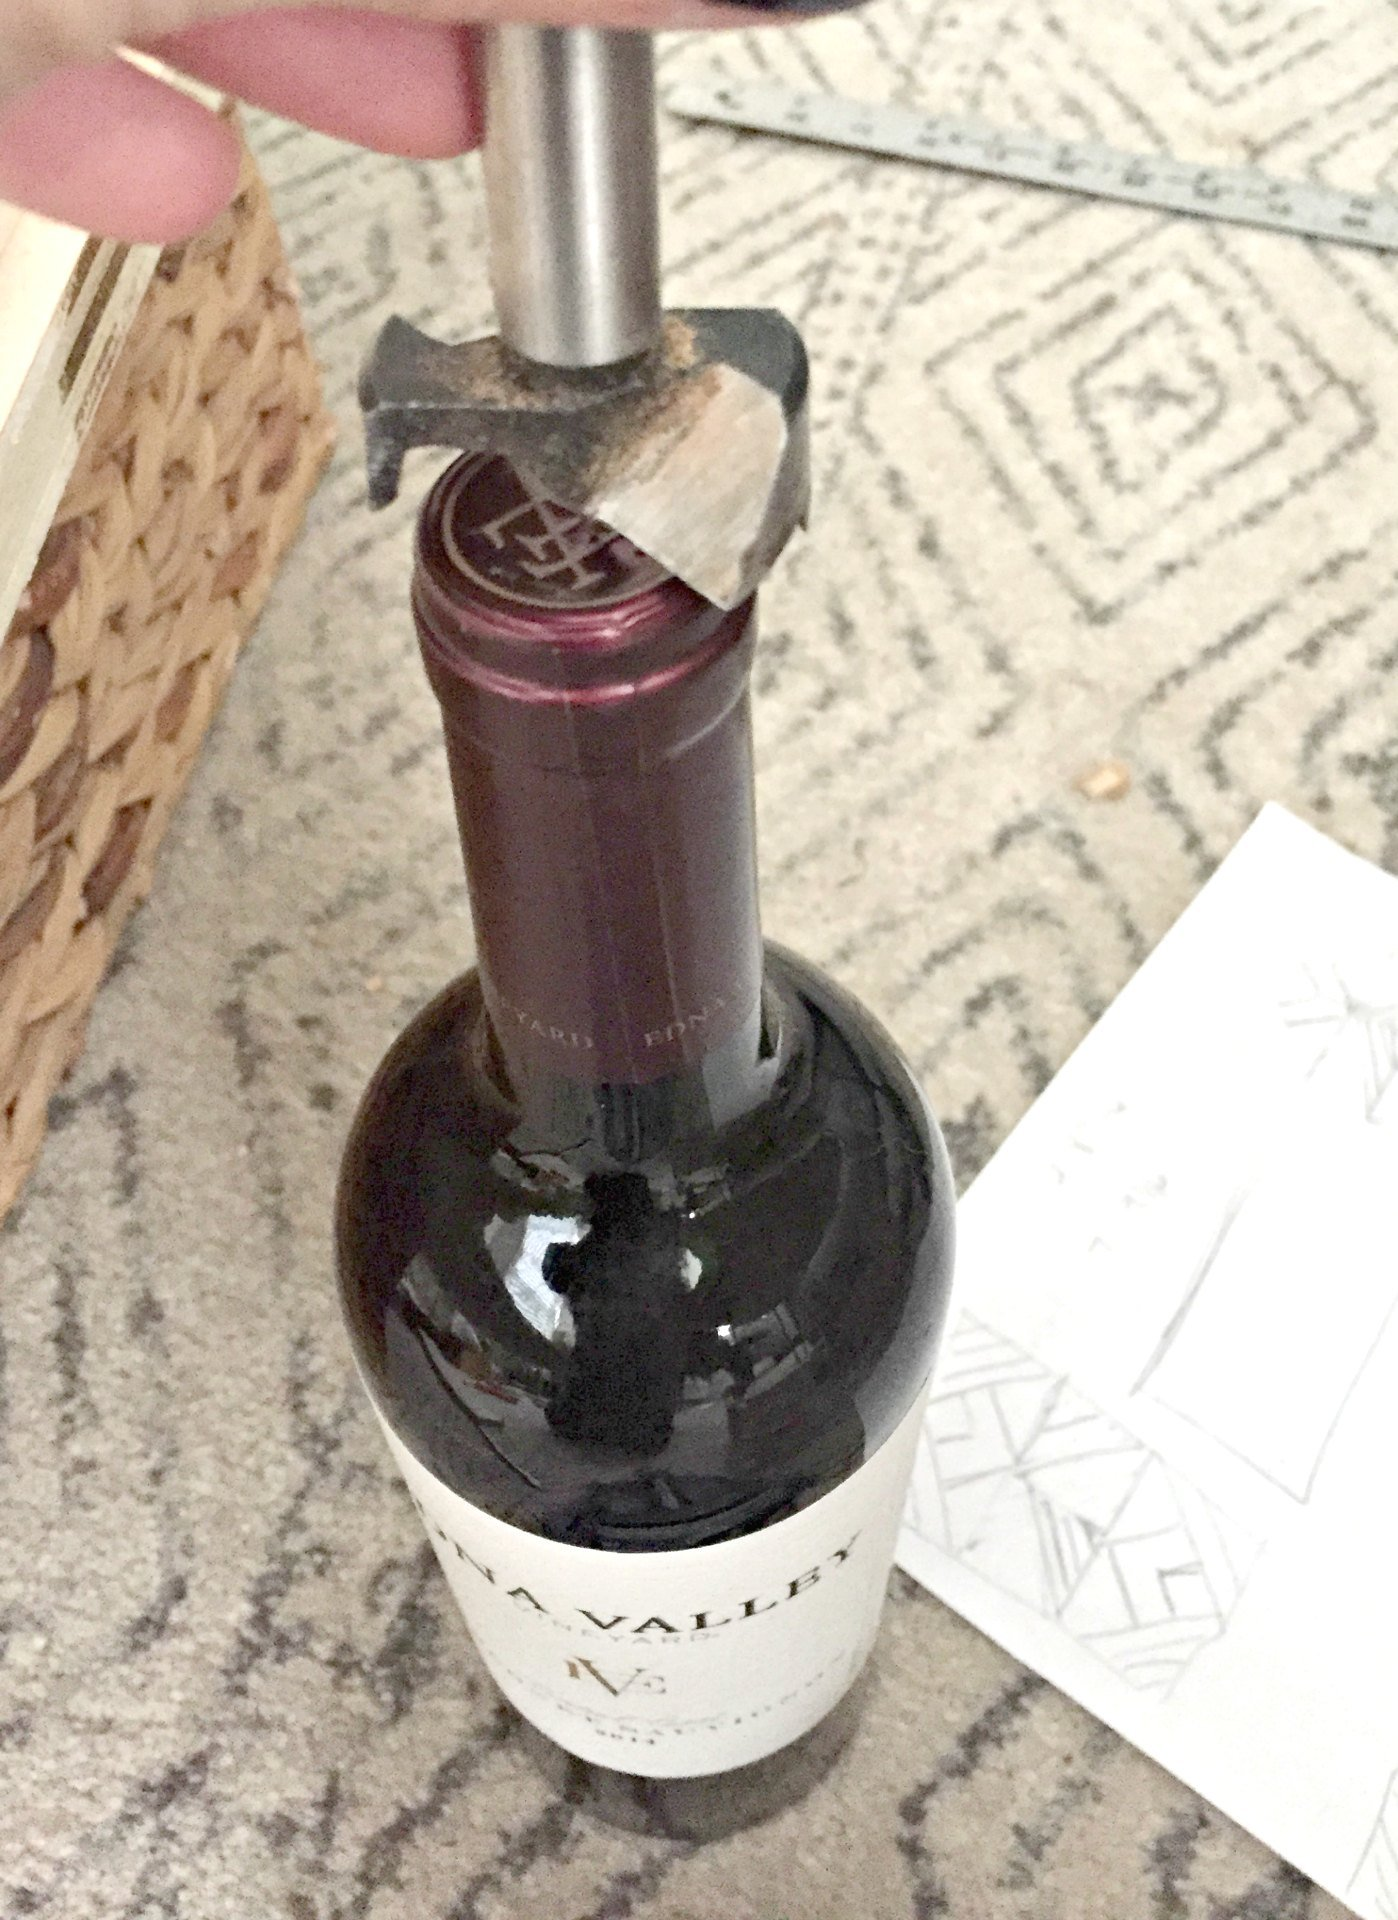 visually testing drill bit hole size on wine bottle